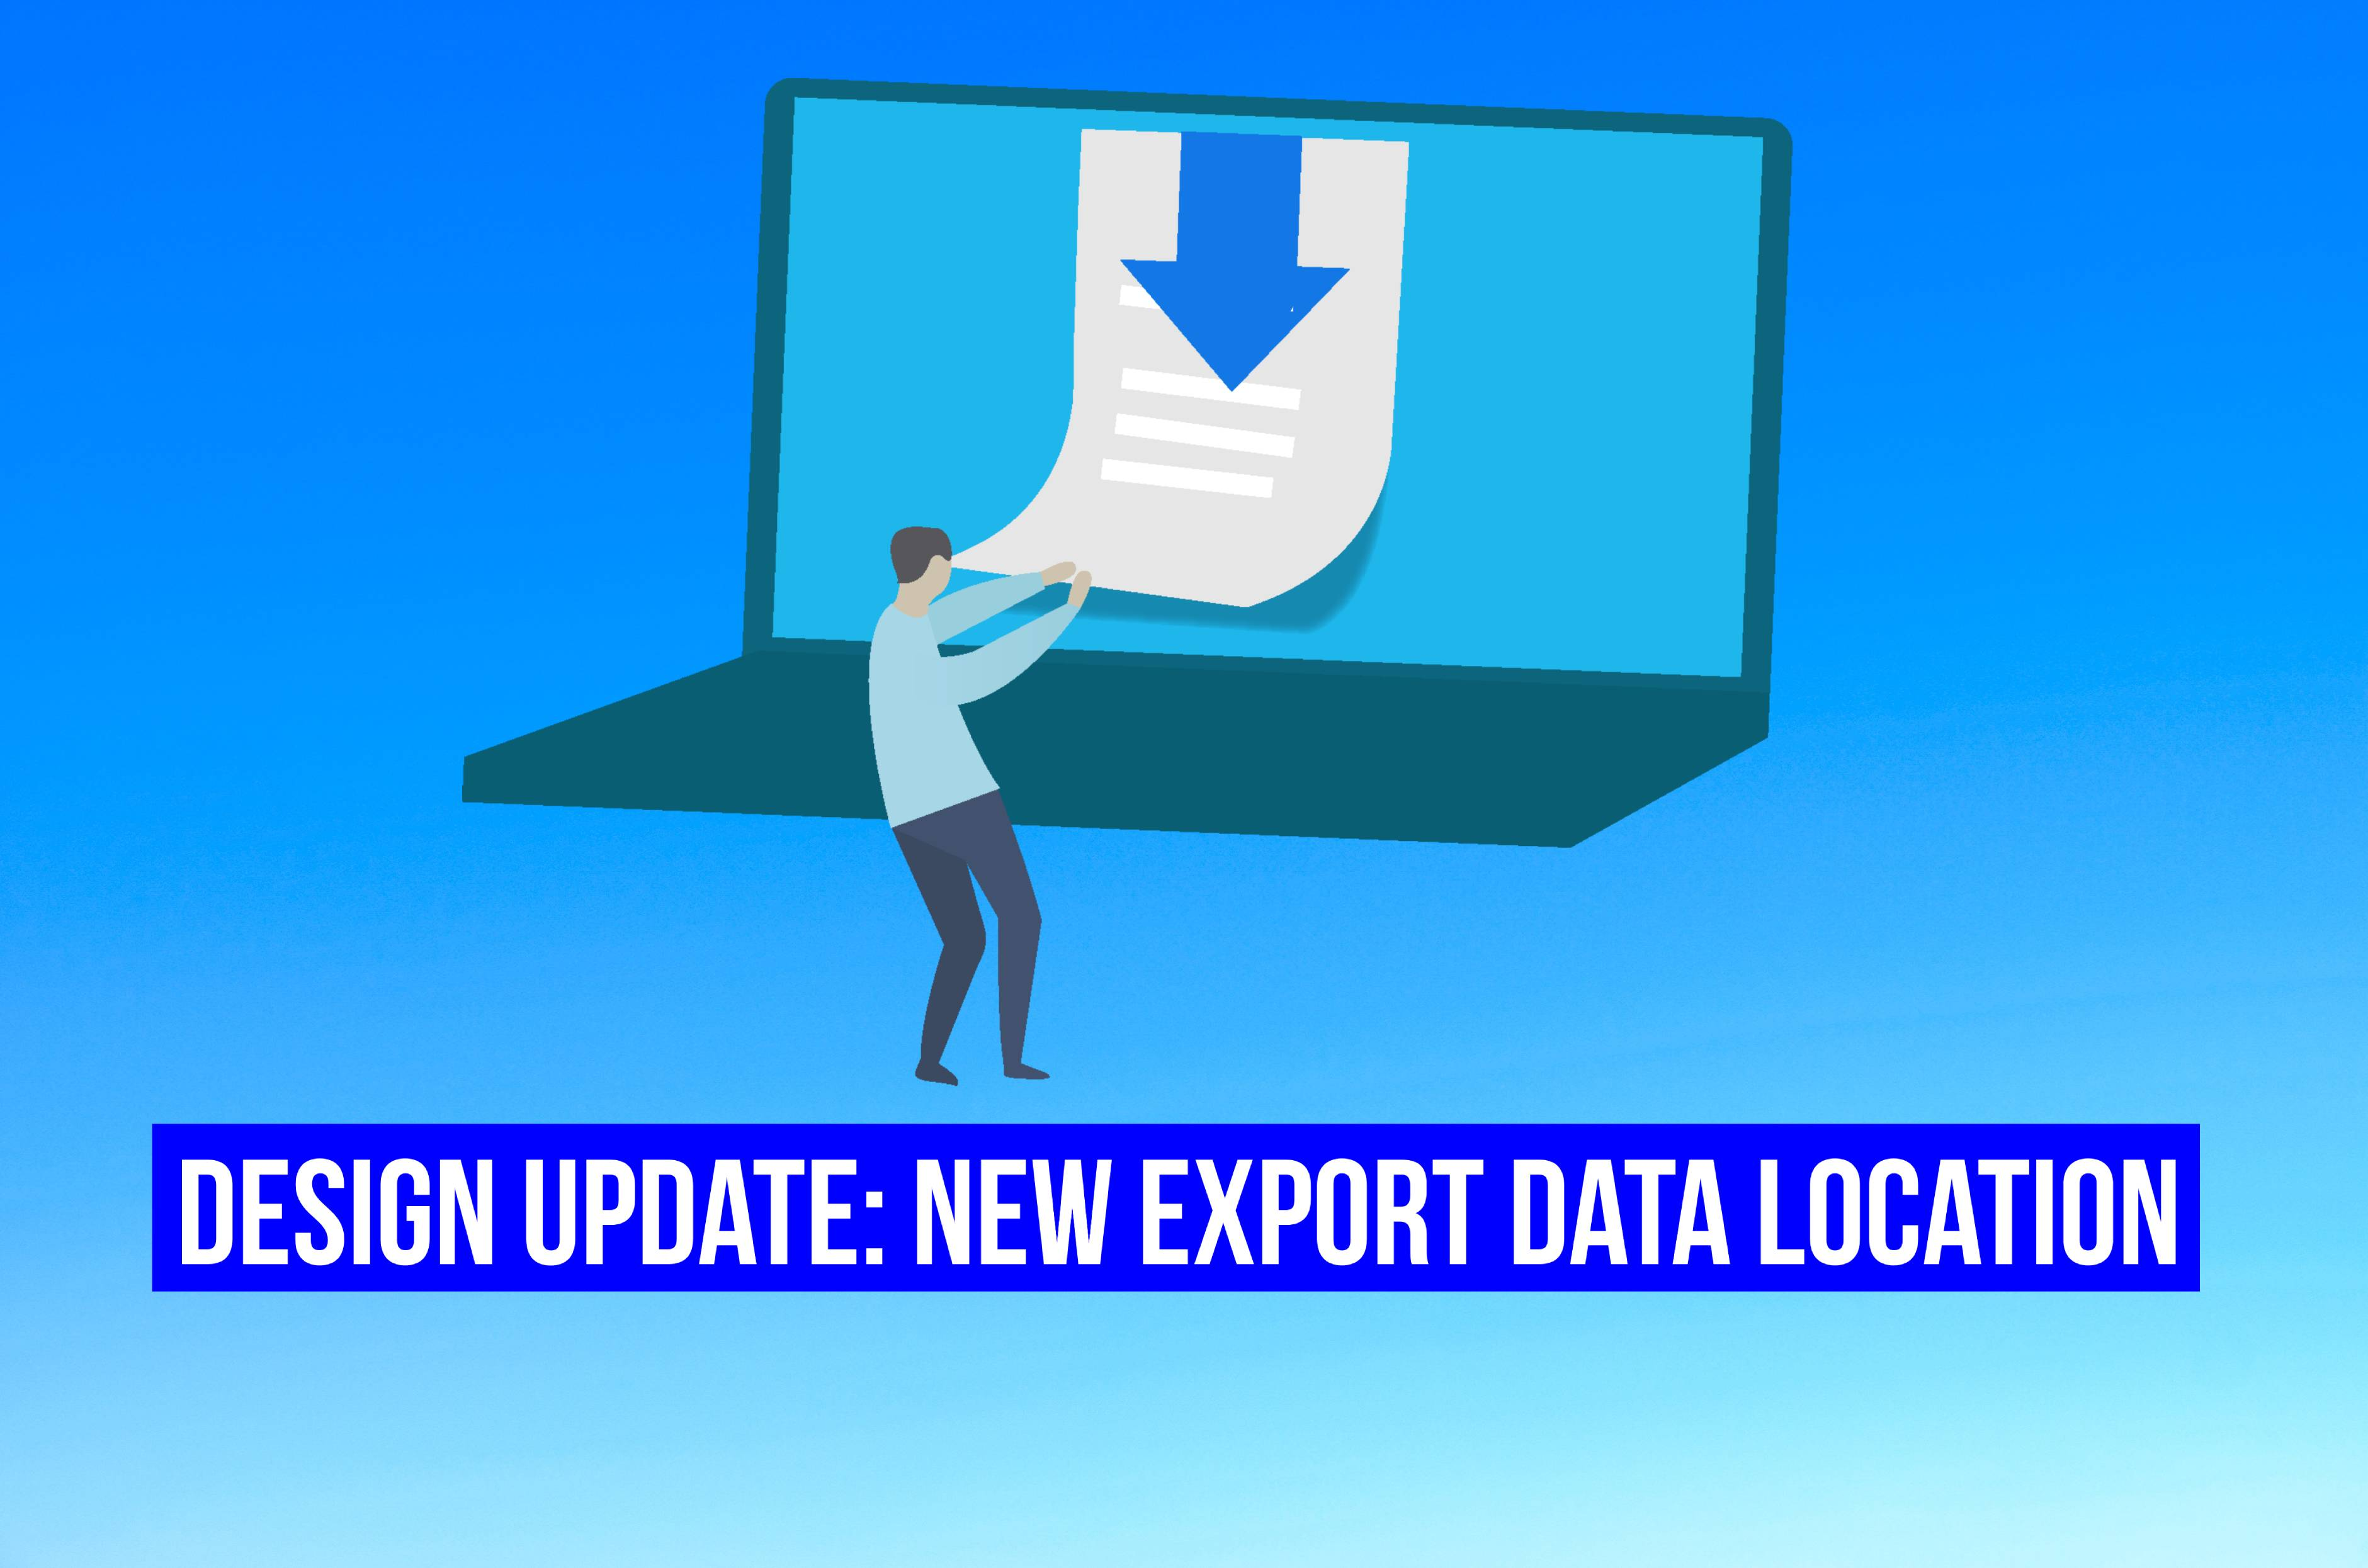 New export data location title image